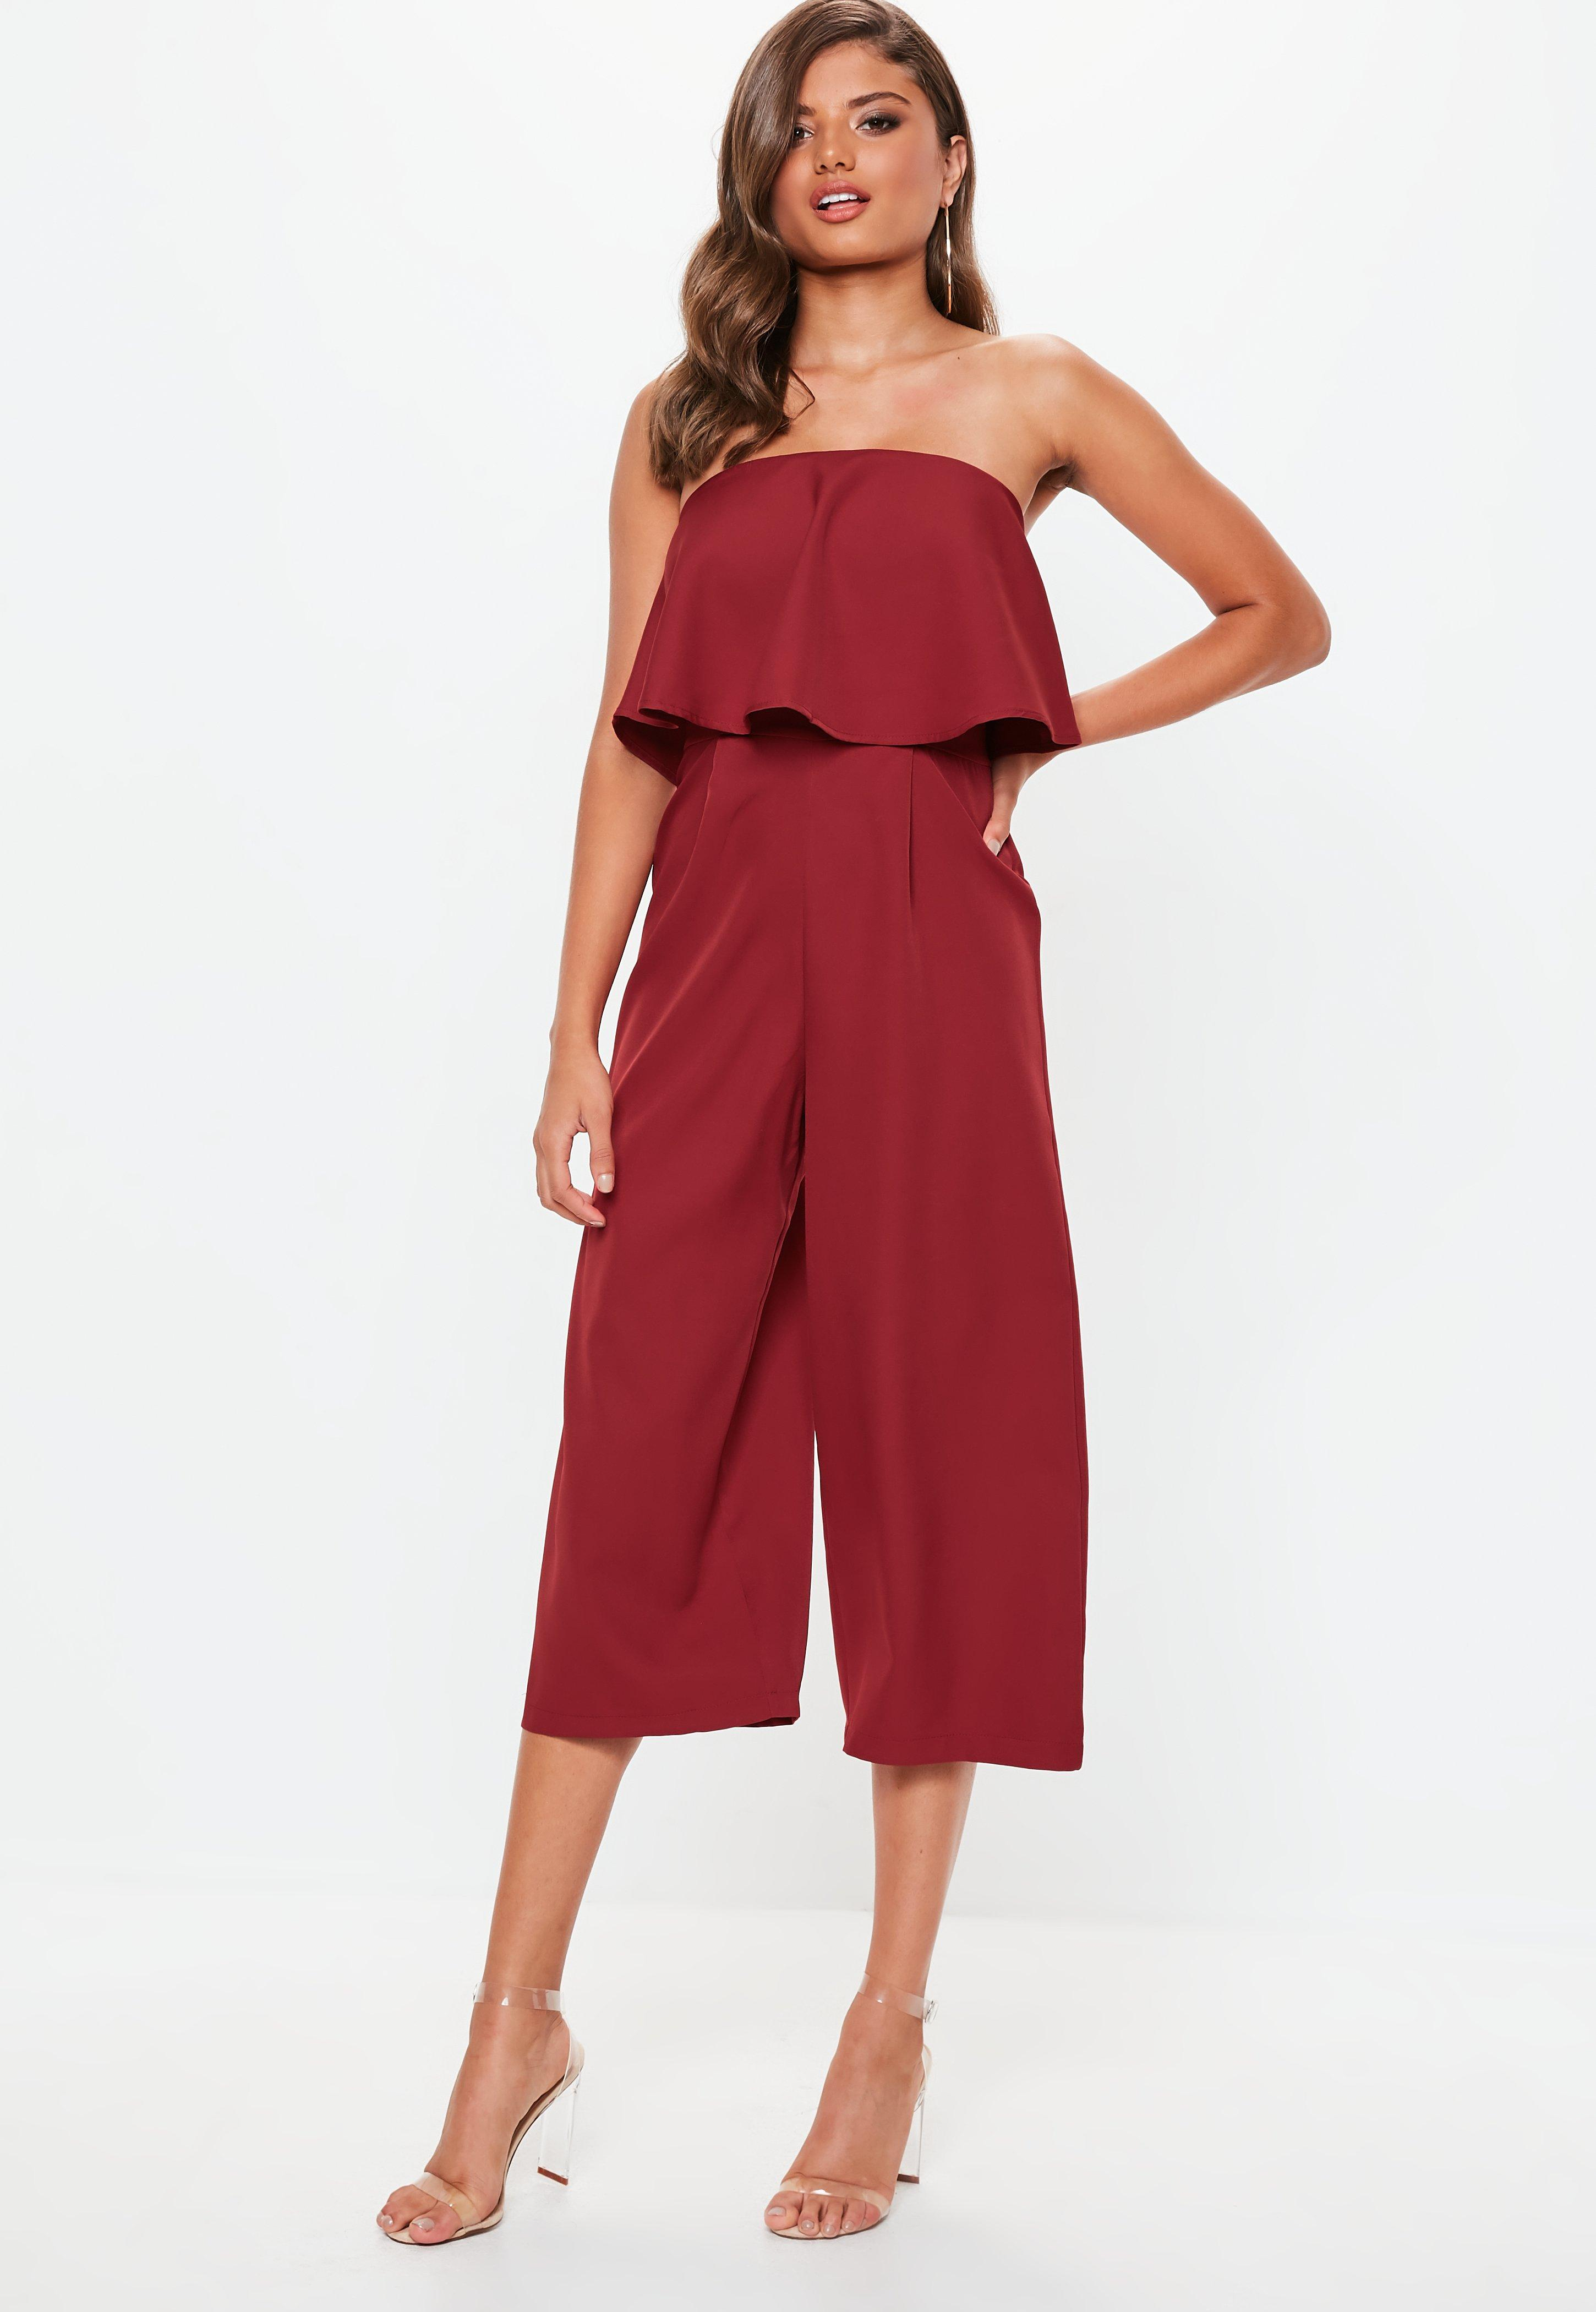 acec04aaff23 Clothes Sale - Women s Cheap Clothes UK - Missguided